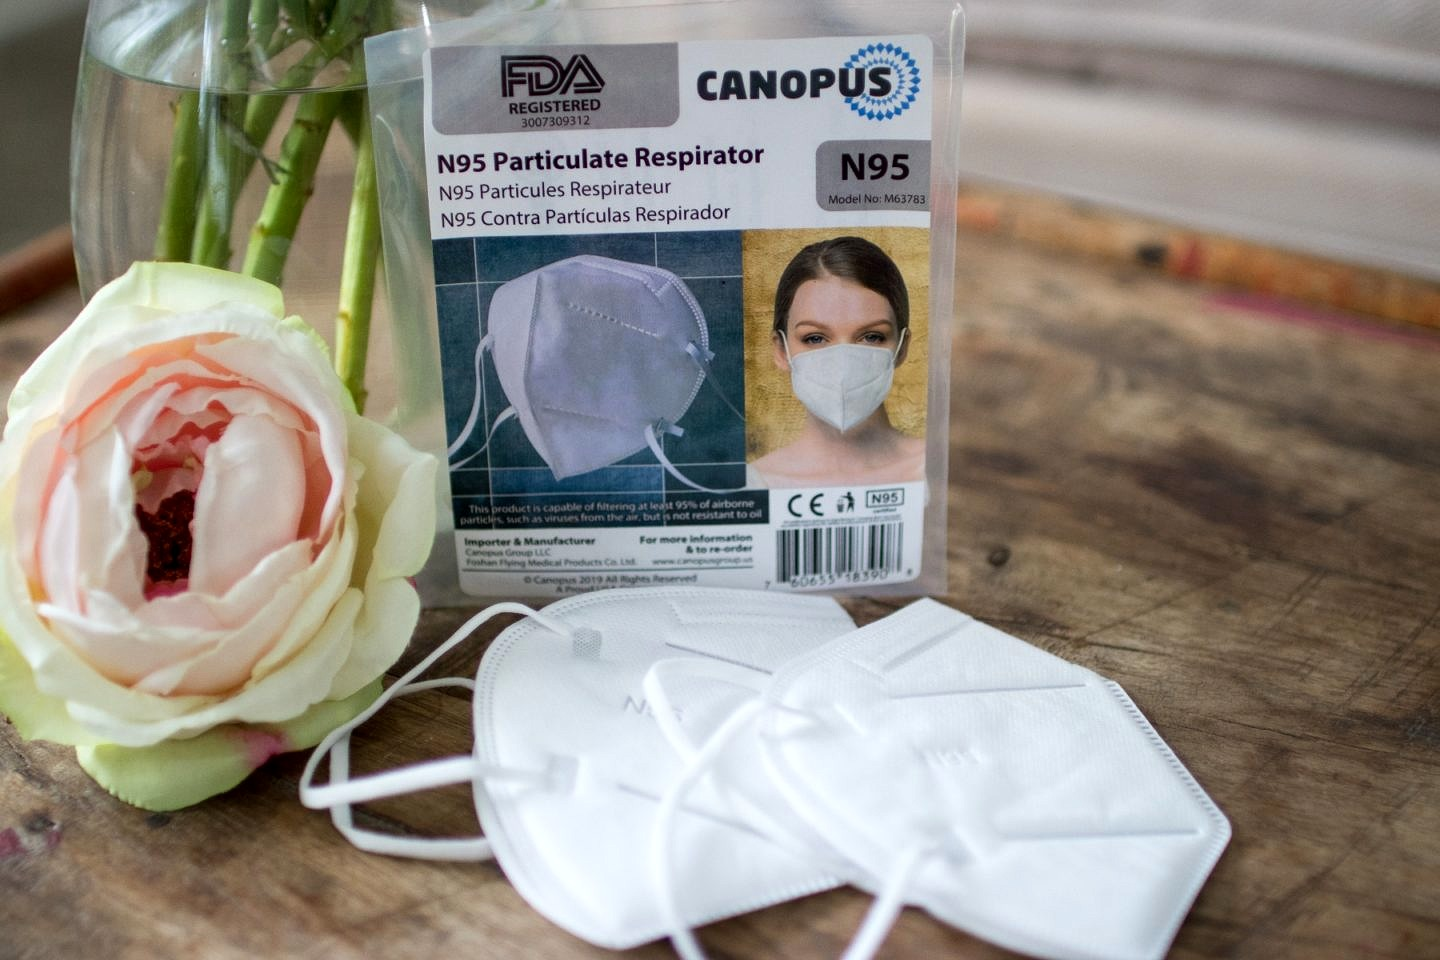 Canopus N95 Particulate Respirator Face Mask Made in the USA